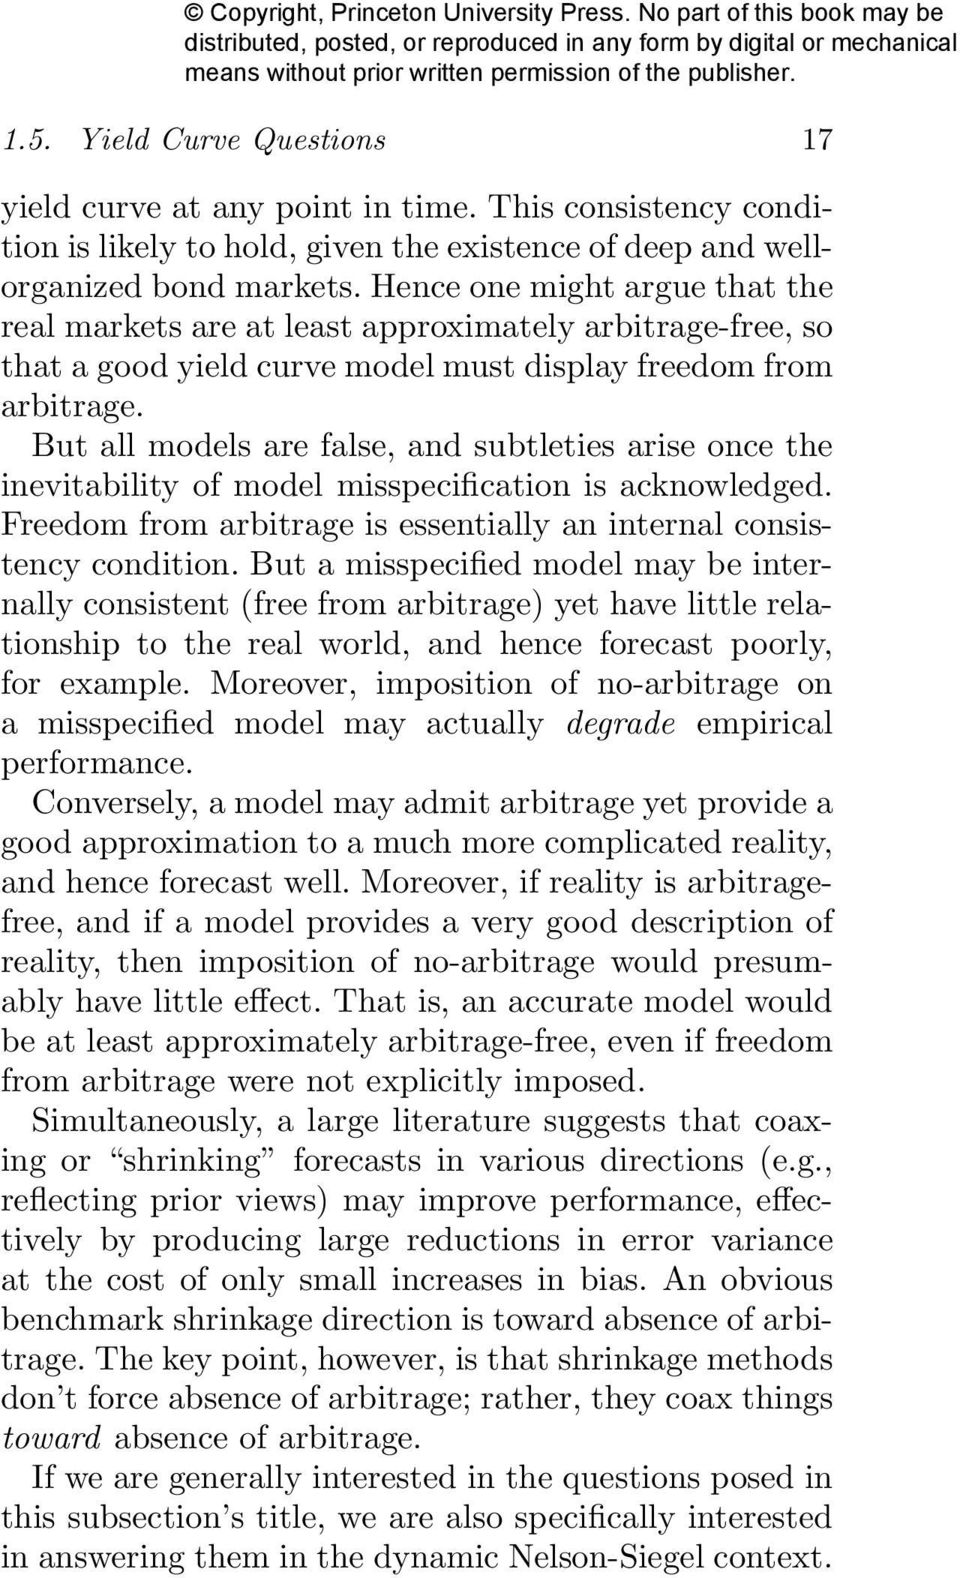 But all models are false, and subtleties arise once the inevitability of model misspecification is acknowledged. Freedom from arbitrage is essentially an internal consistency condition.